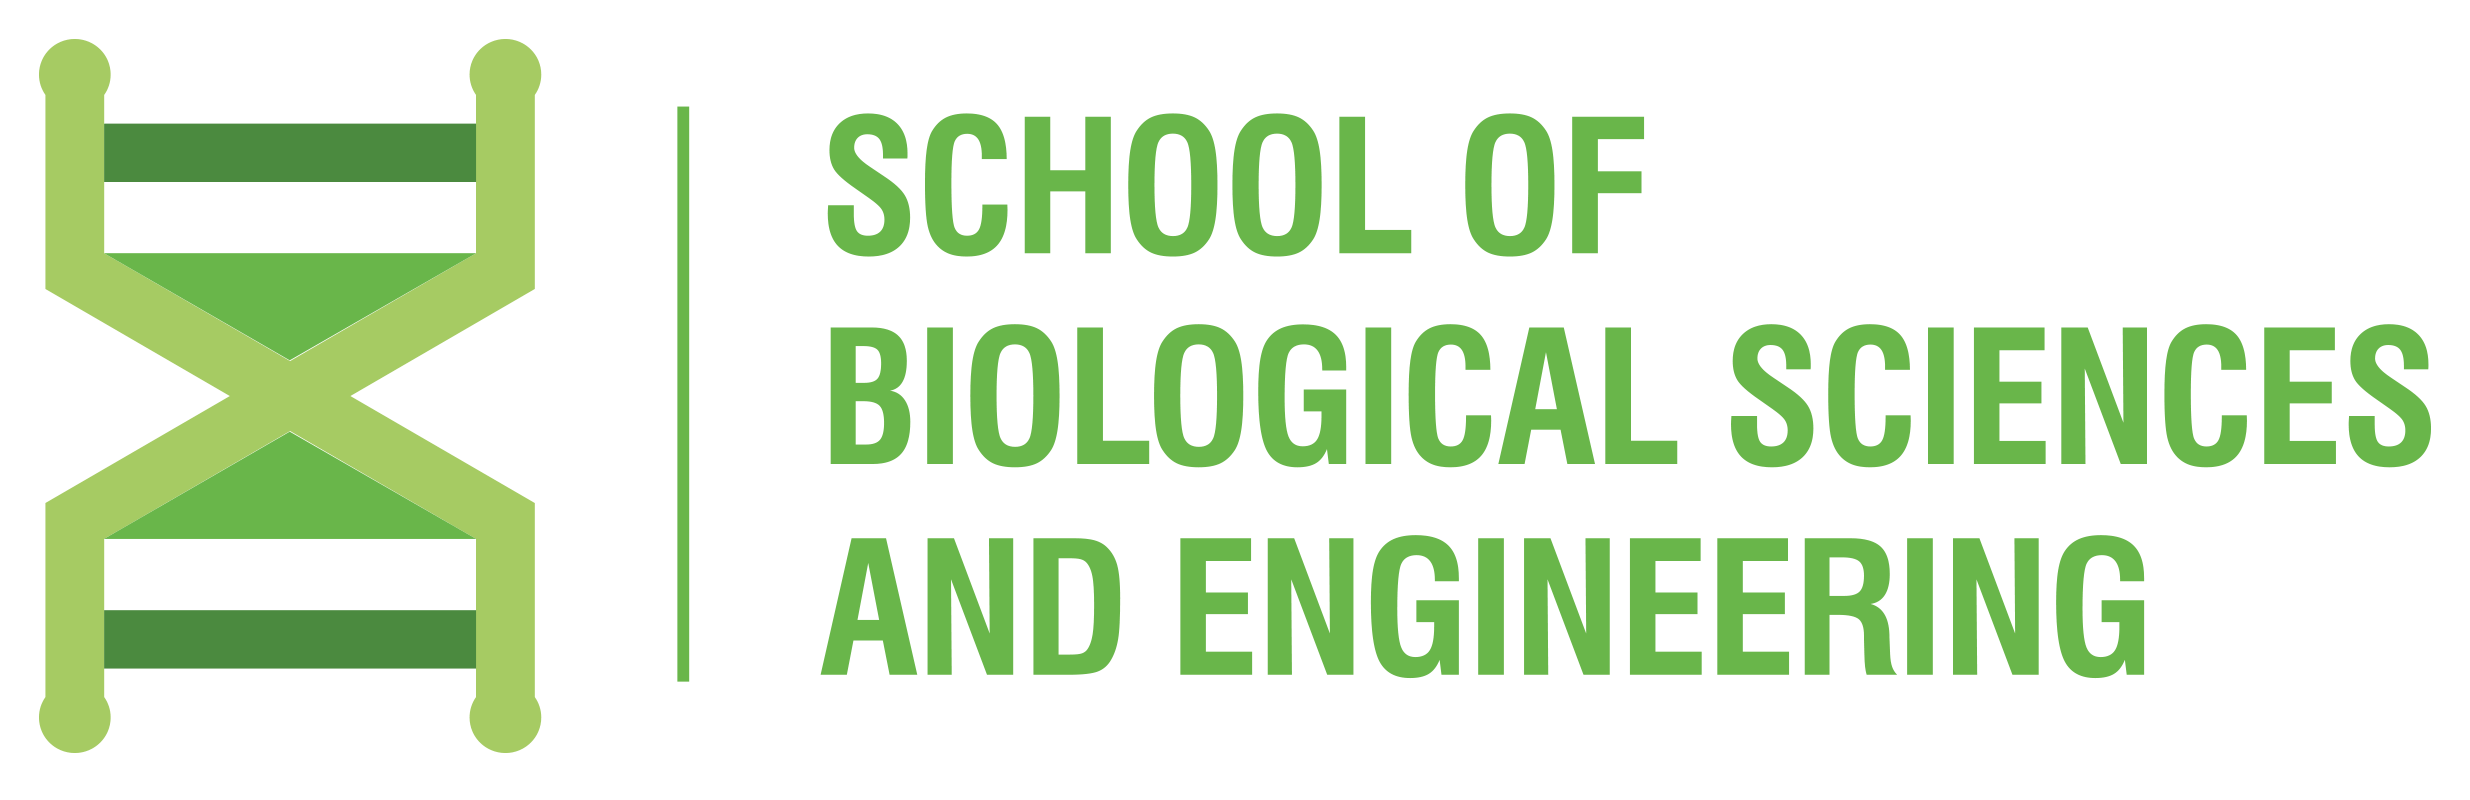 SCHOOL OF BIOLOGICAL SCIENCES AND ENGINEERING